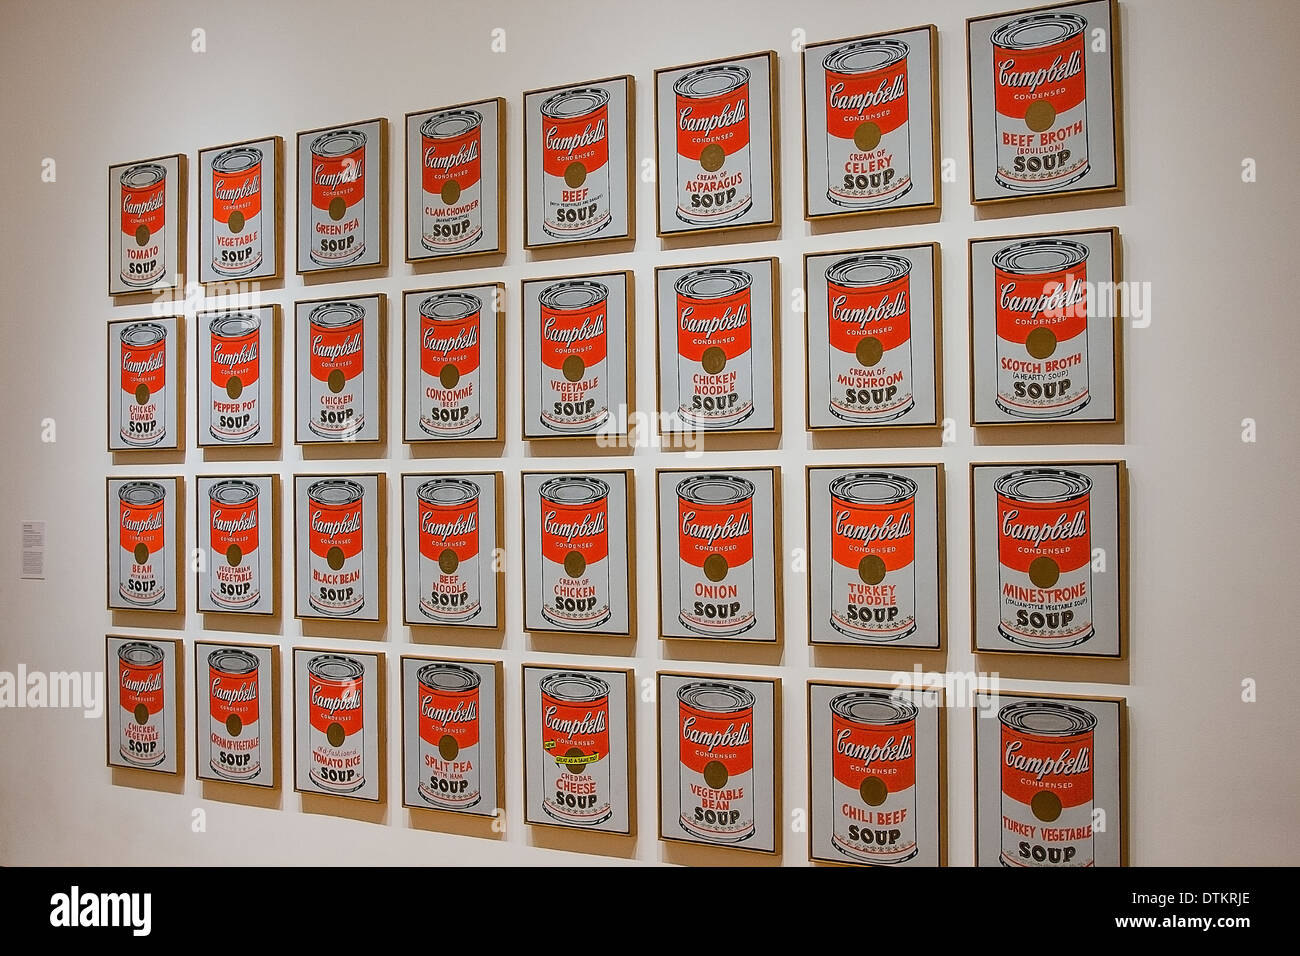 Andy Warhol Campbell Suppe Stockfotos Andy Warhol Campbell Suppe